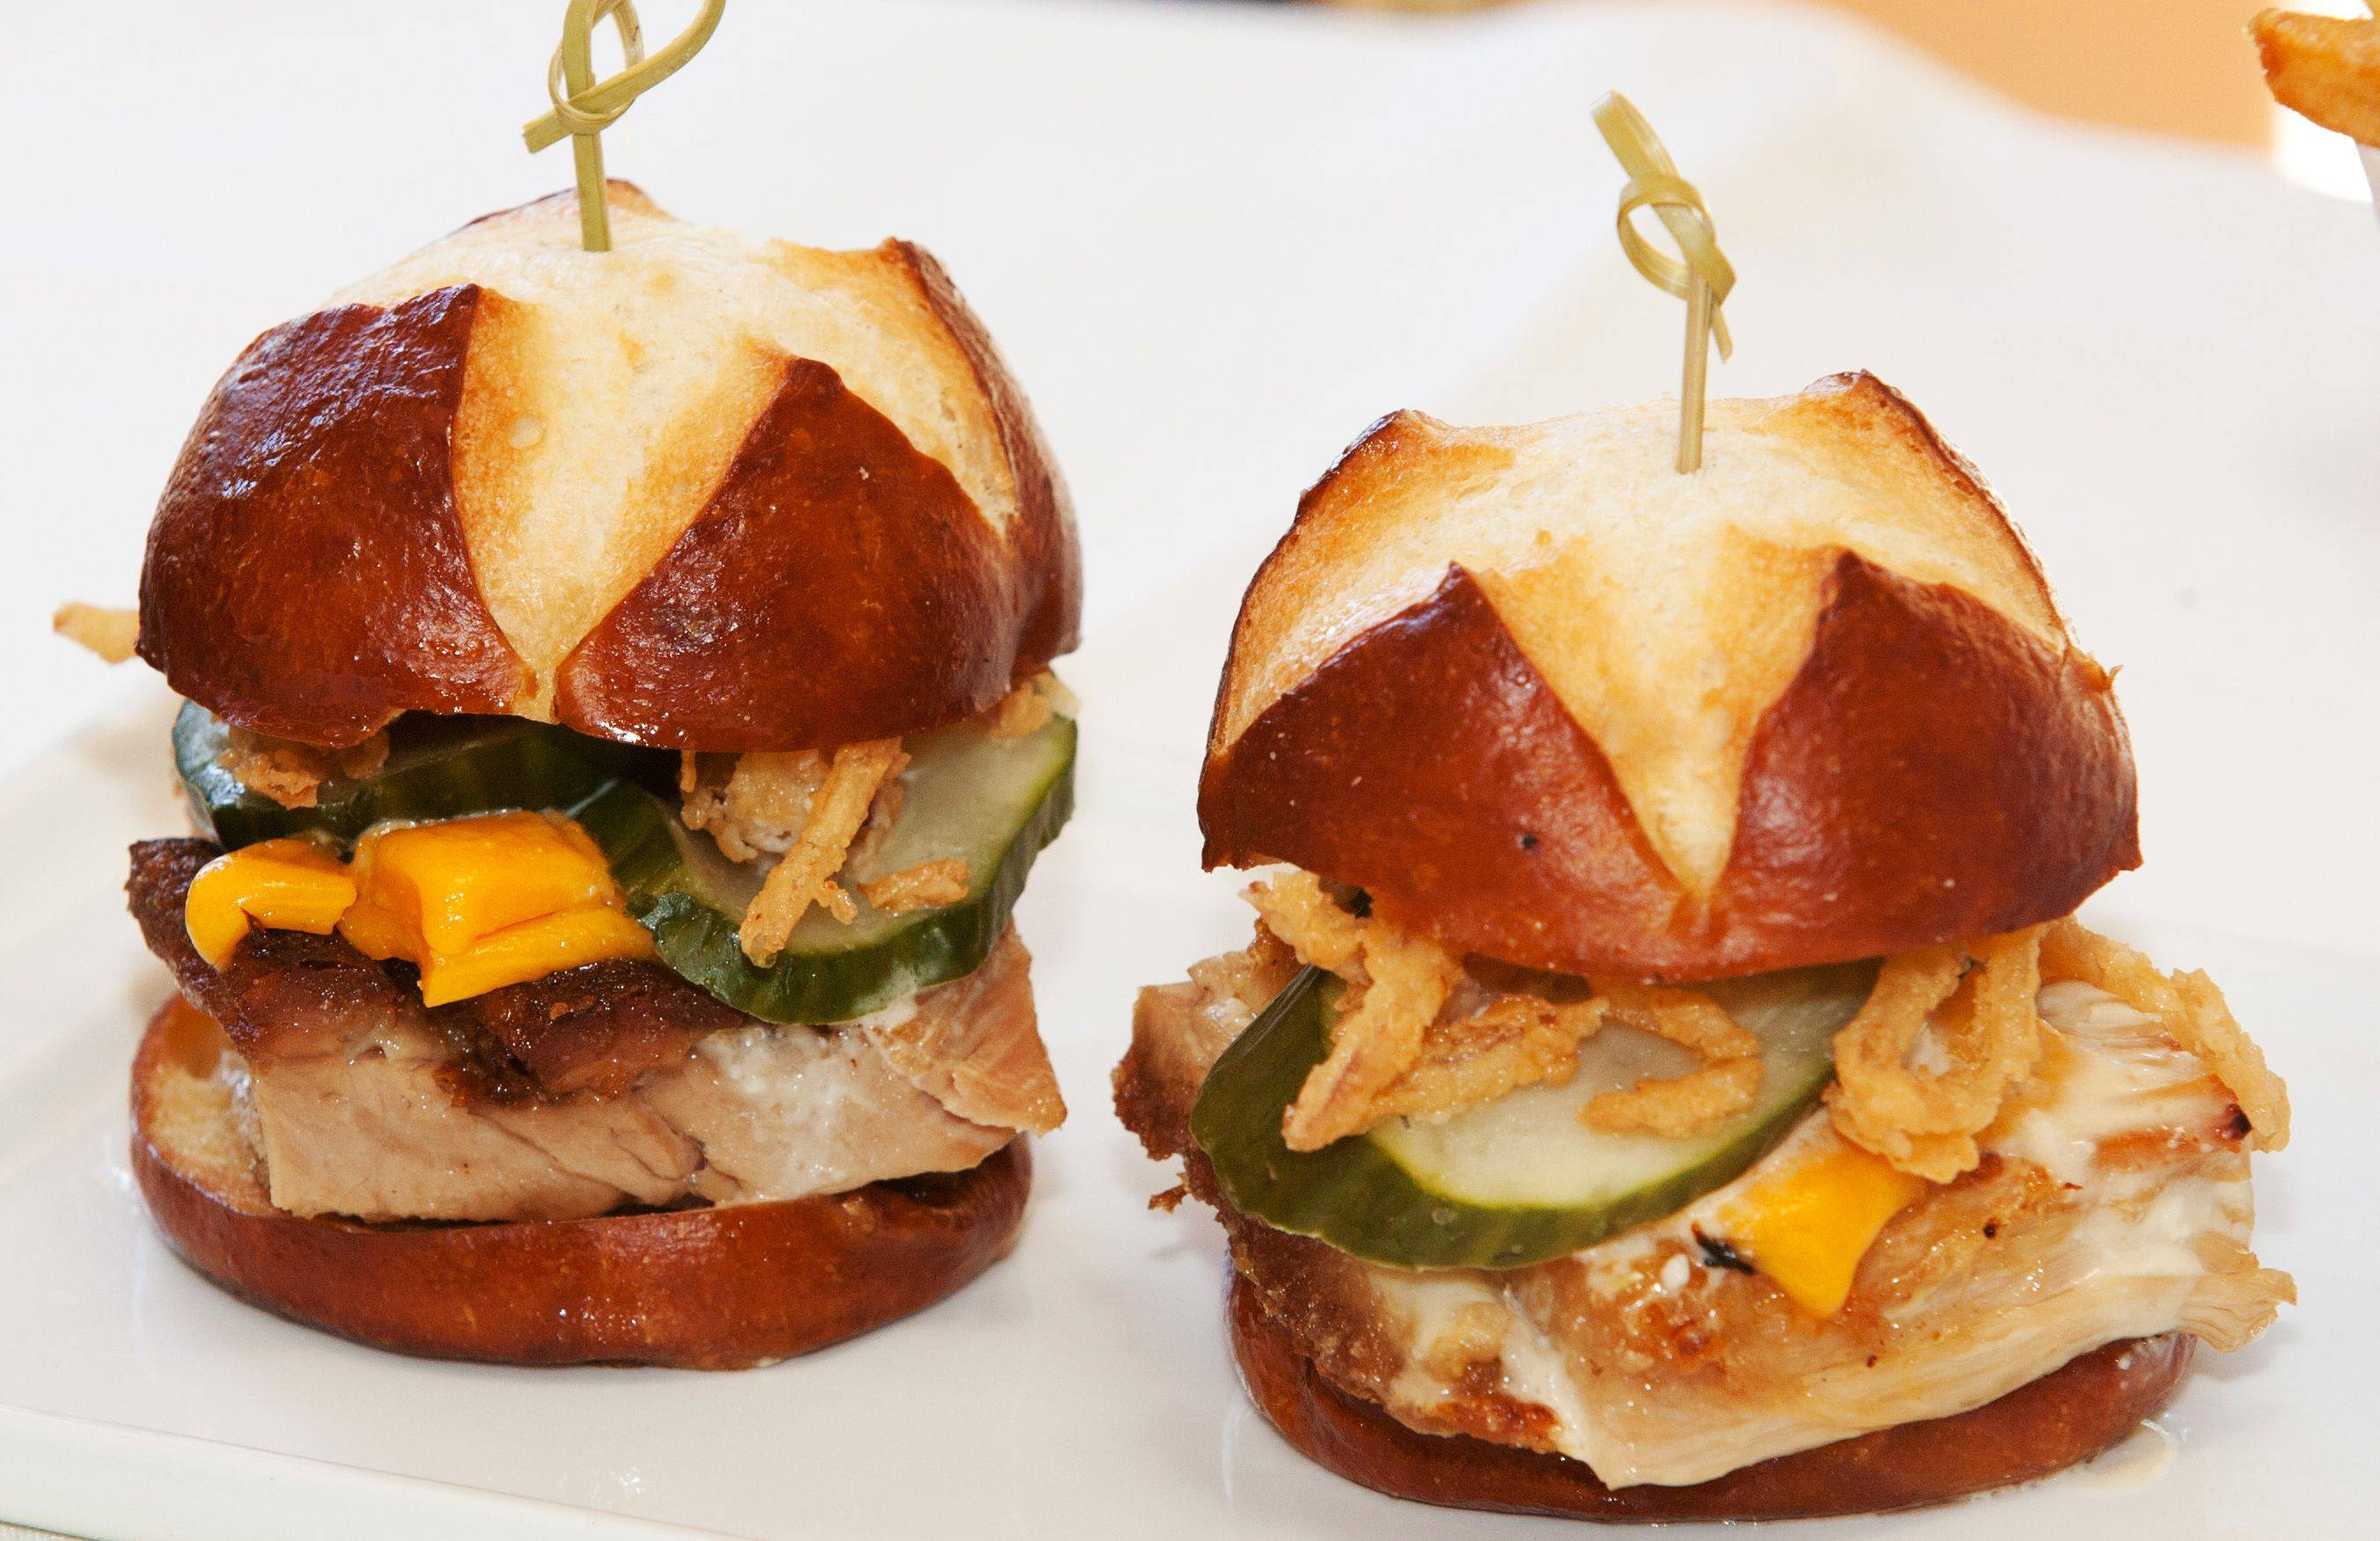 Chef Troy Tornabeni's pork belly confit sliders have replaced pulled pork sandwiches as a favorite at Stonebridge Country Club in Aurora.